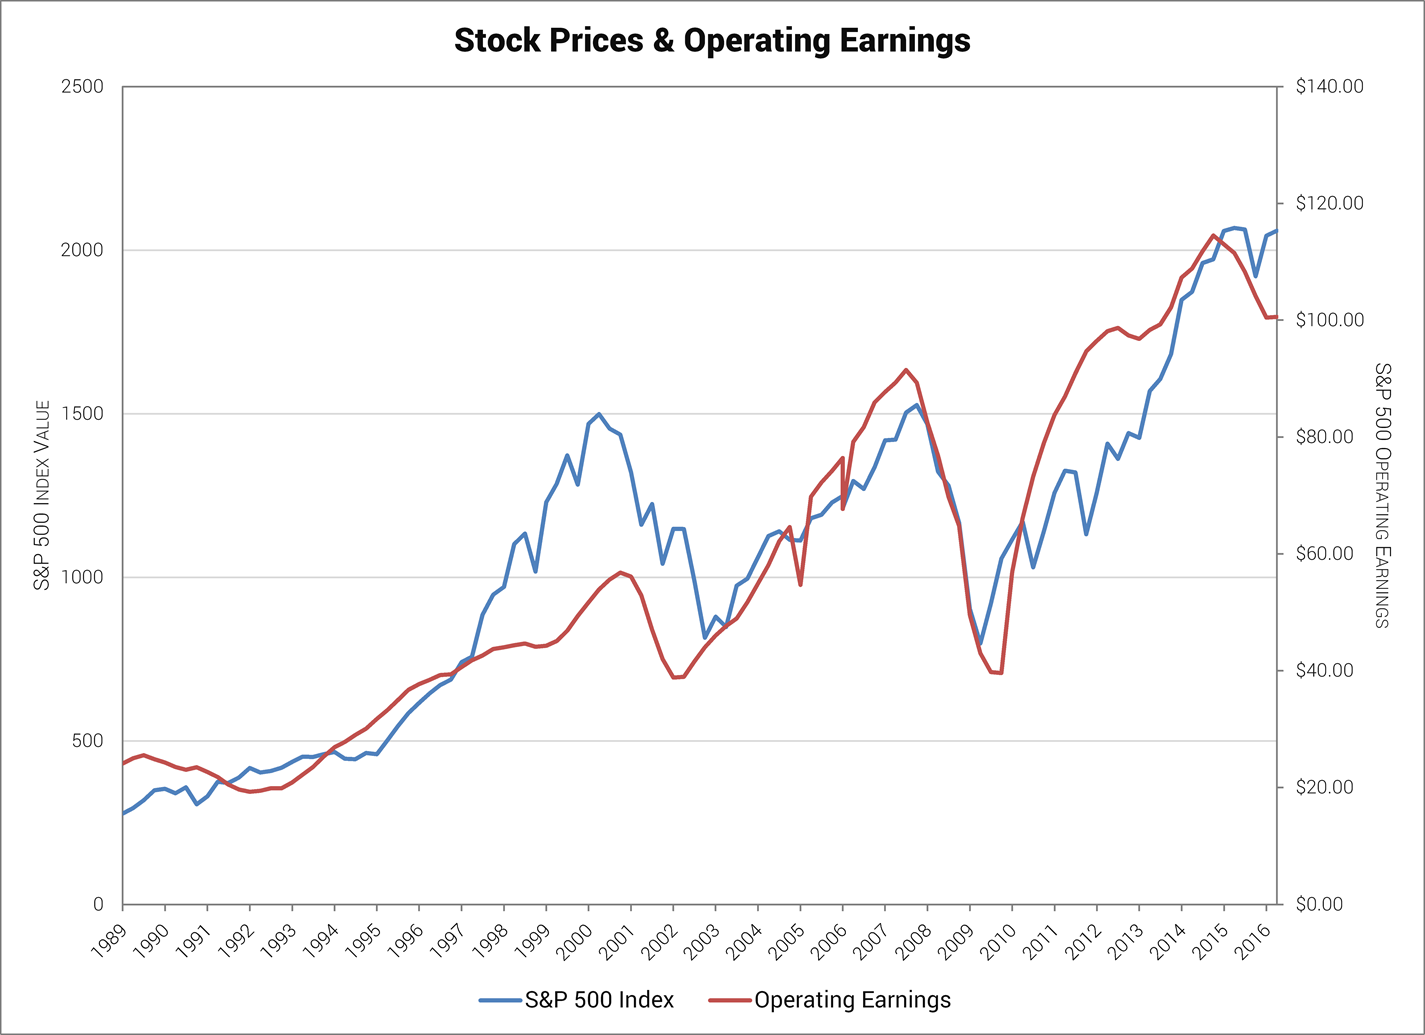 Stock Prices & Operating Earnings